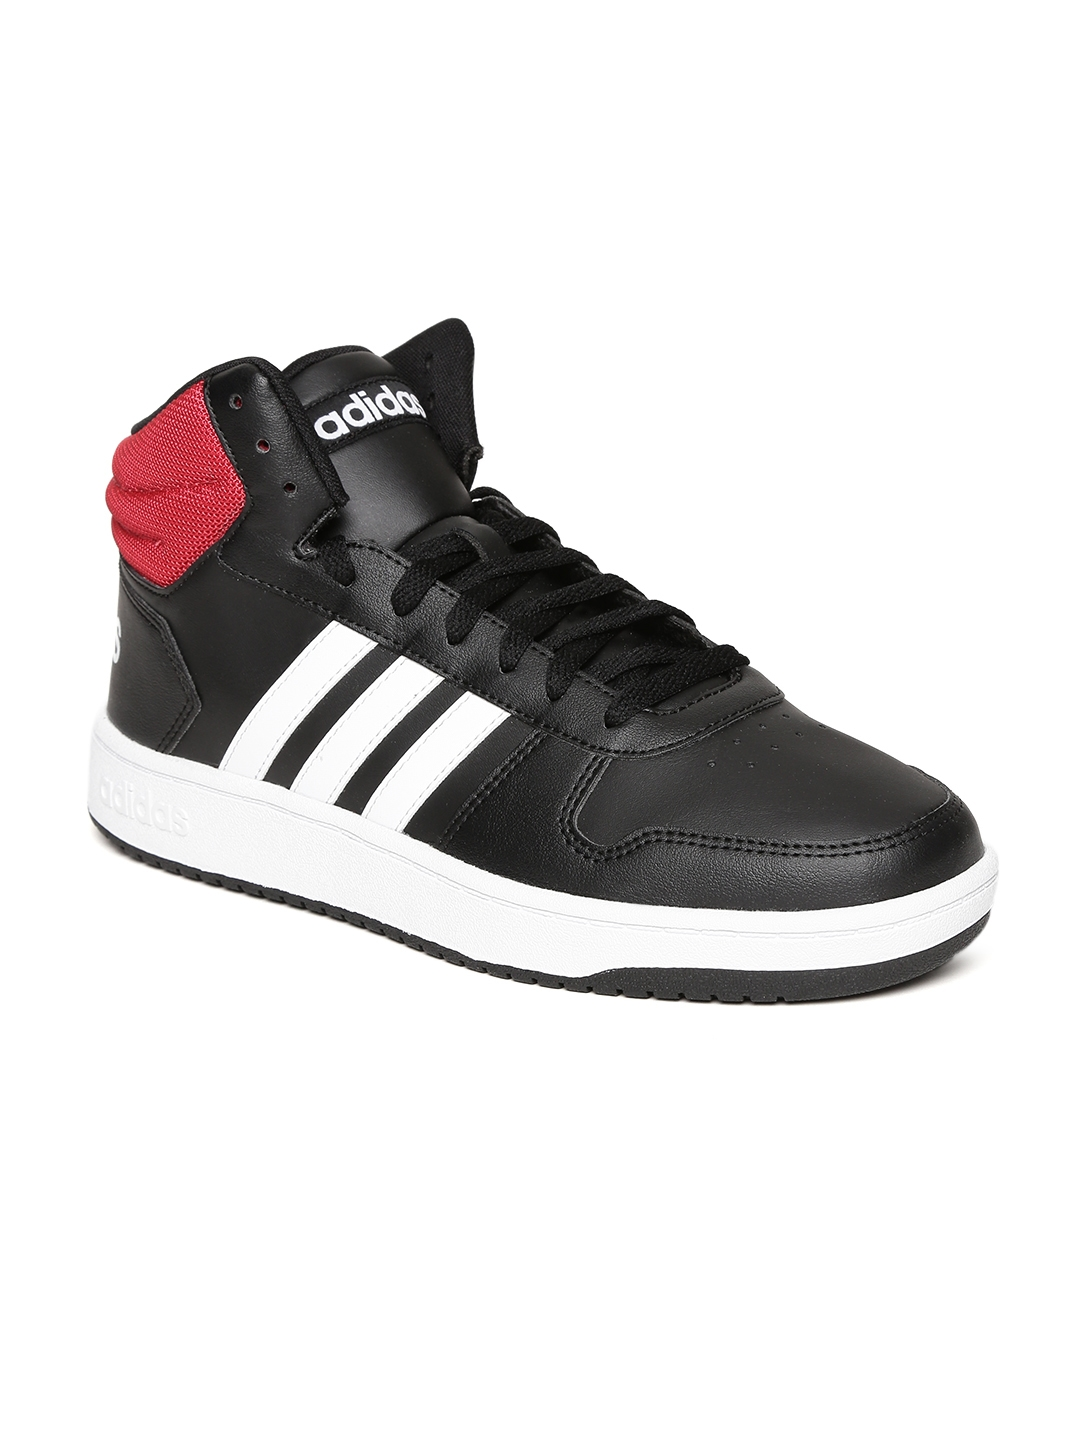 Buy ADIDAS Men Black HOOPS 2.0 MID Sneakers - Casual Shoes for Men ... 1ec5a3bc4